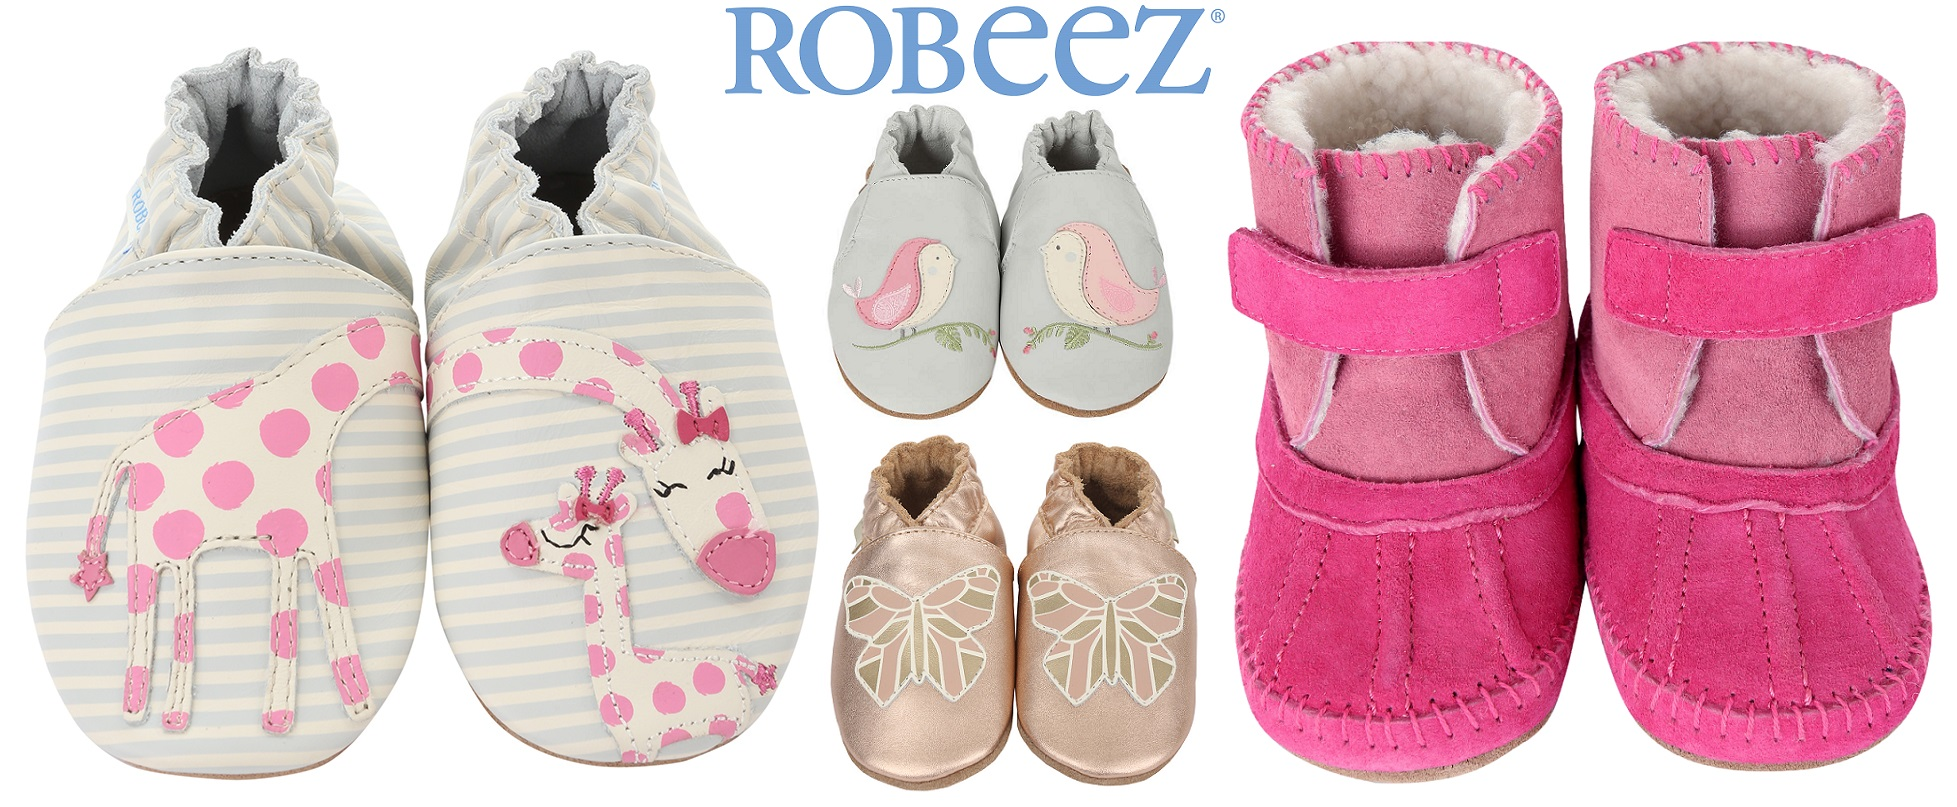 robeez-soft-soles-baby-shoes-girl-all.jpg